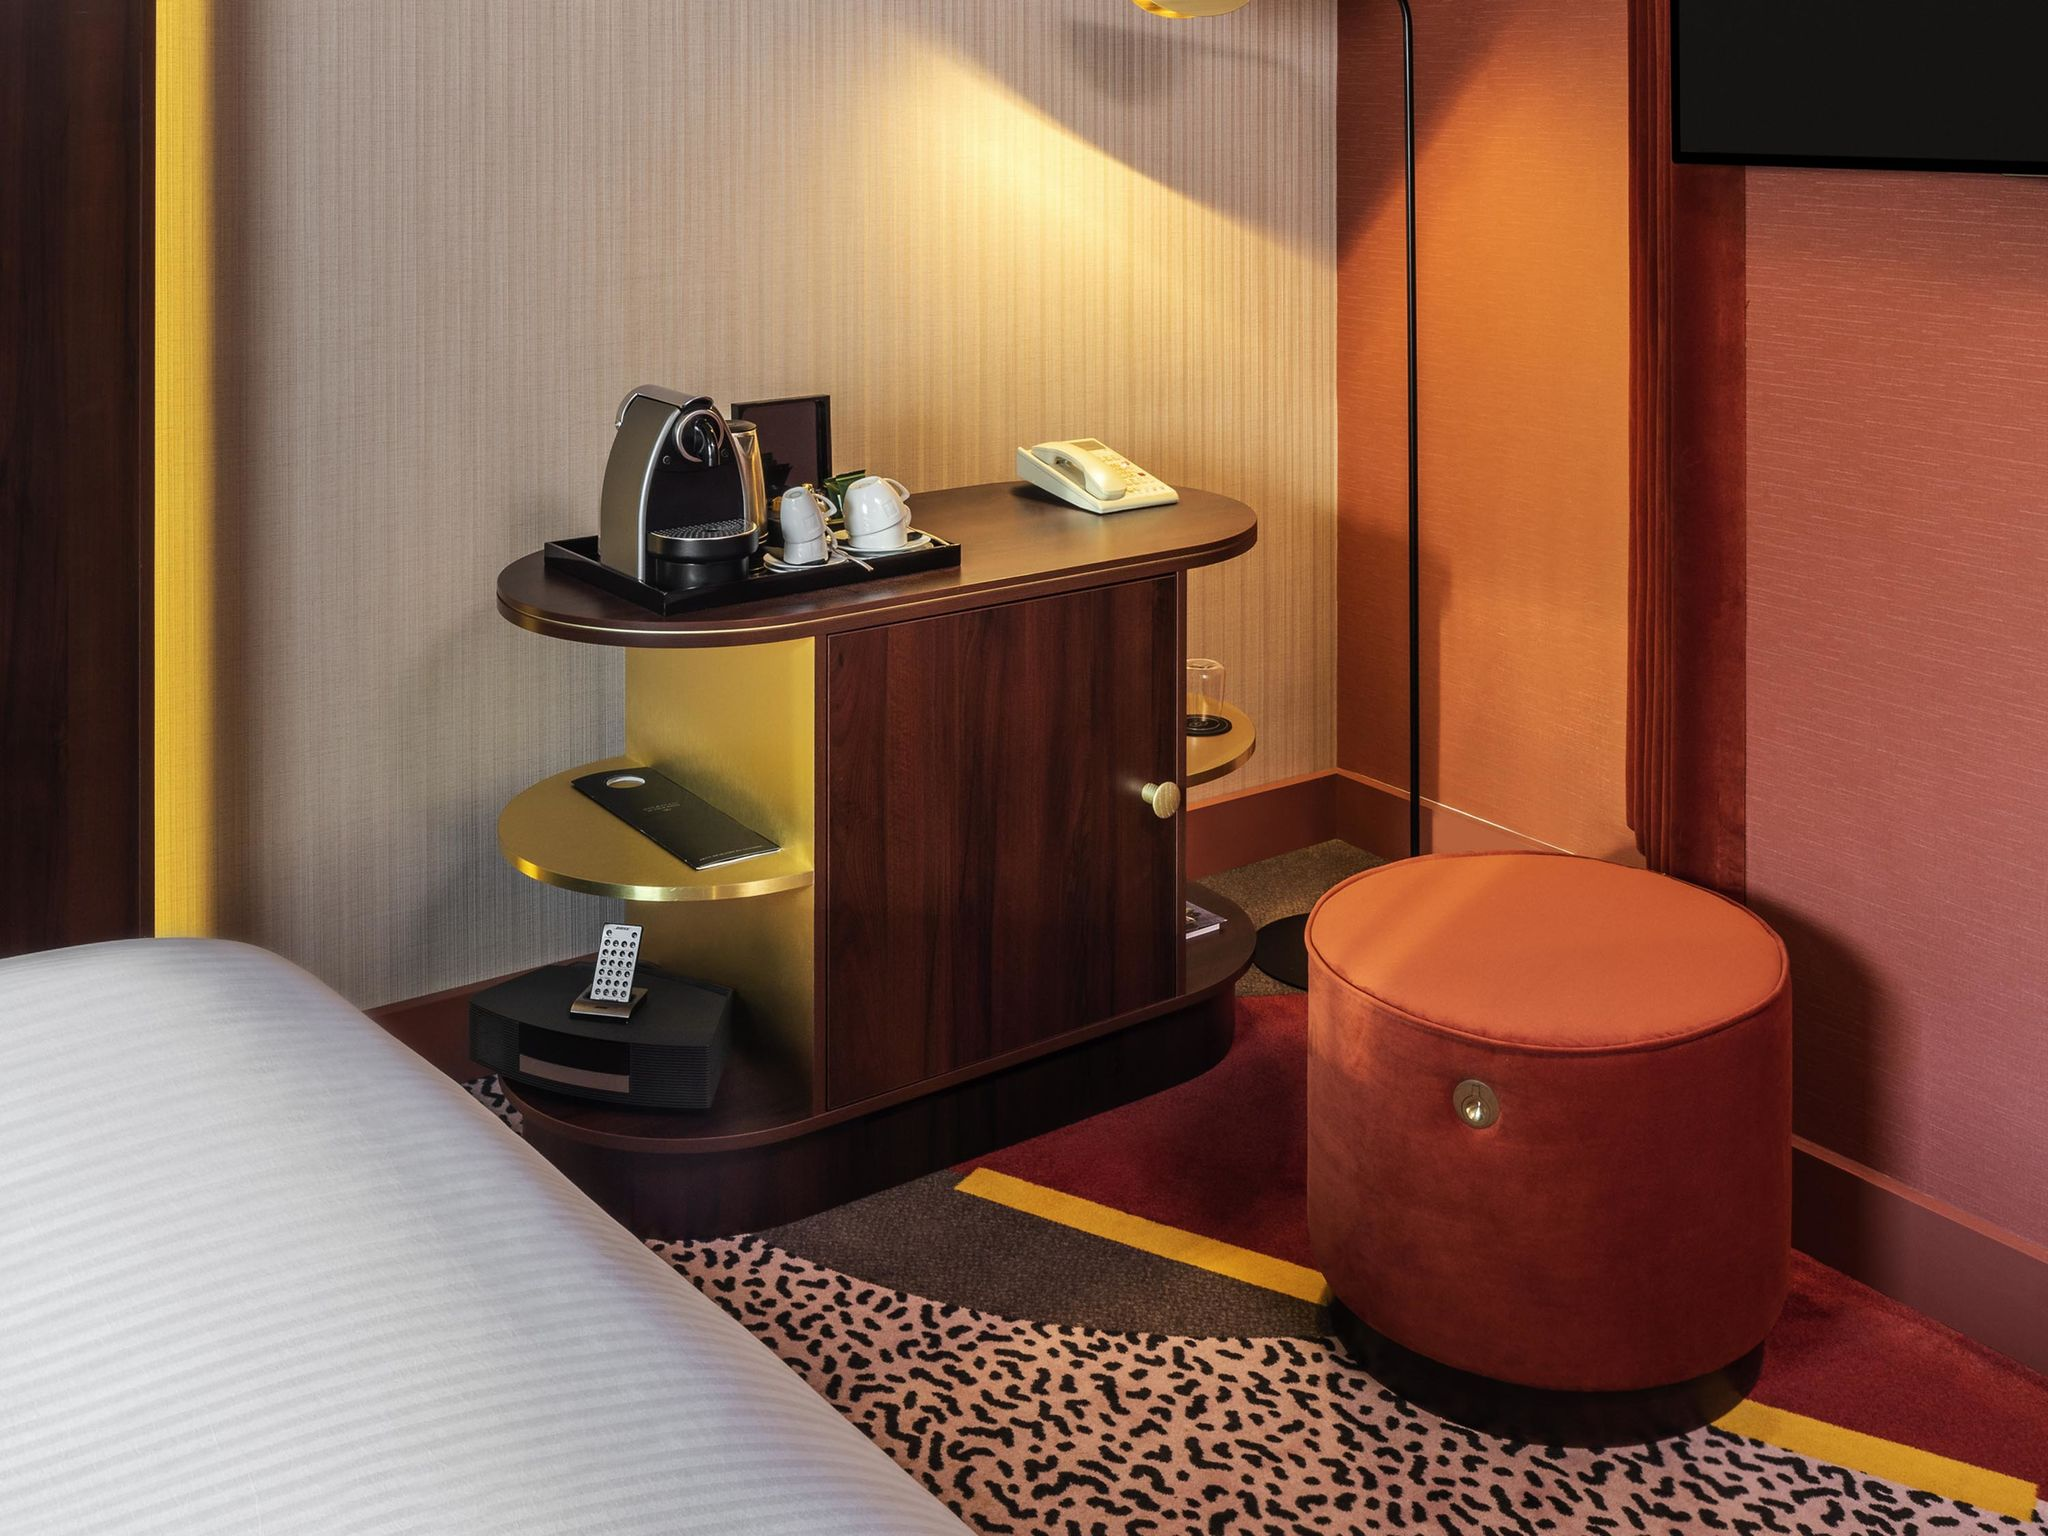 awesome hotel sofitel paris la defense with maison du monde la dfense. Black Bedroom Furniture Sets. Home Design Ideas